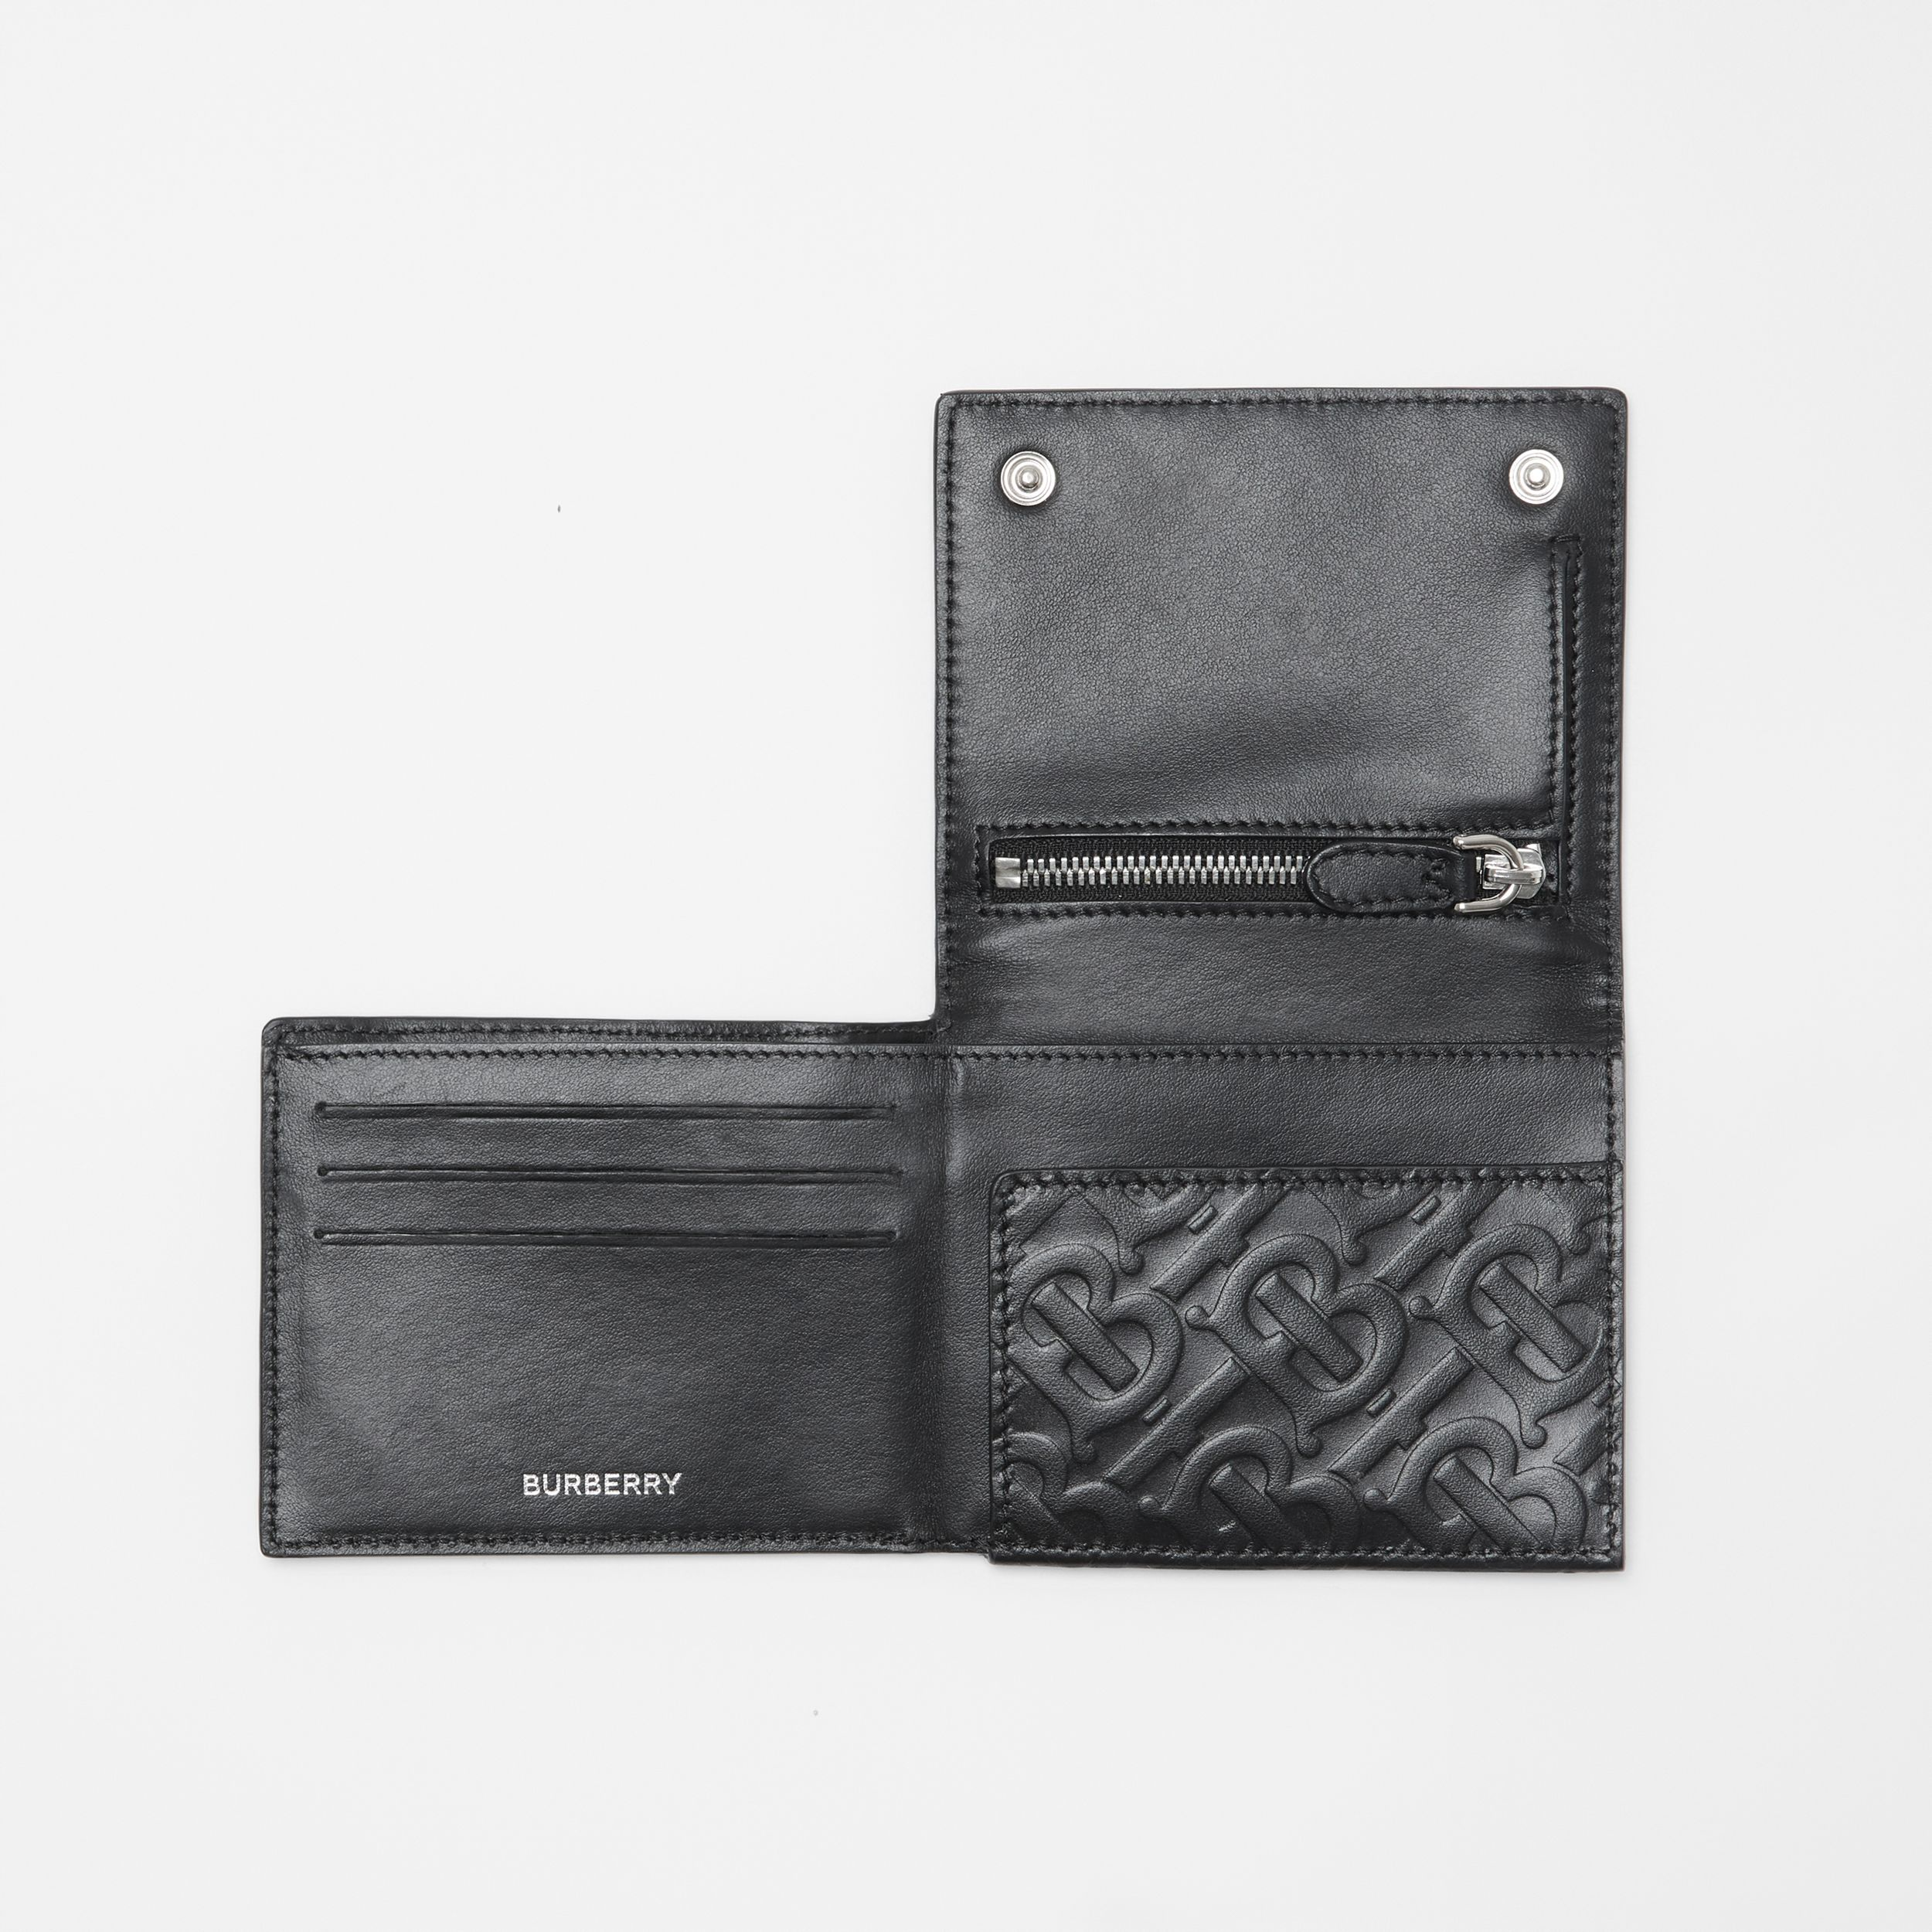 Monogram Embossed Leather Trifold Wallet in Black | Burberry - 3